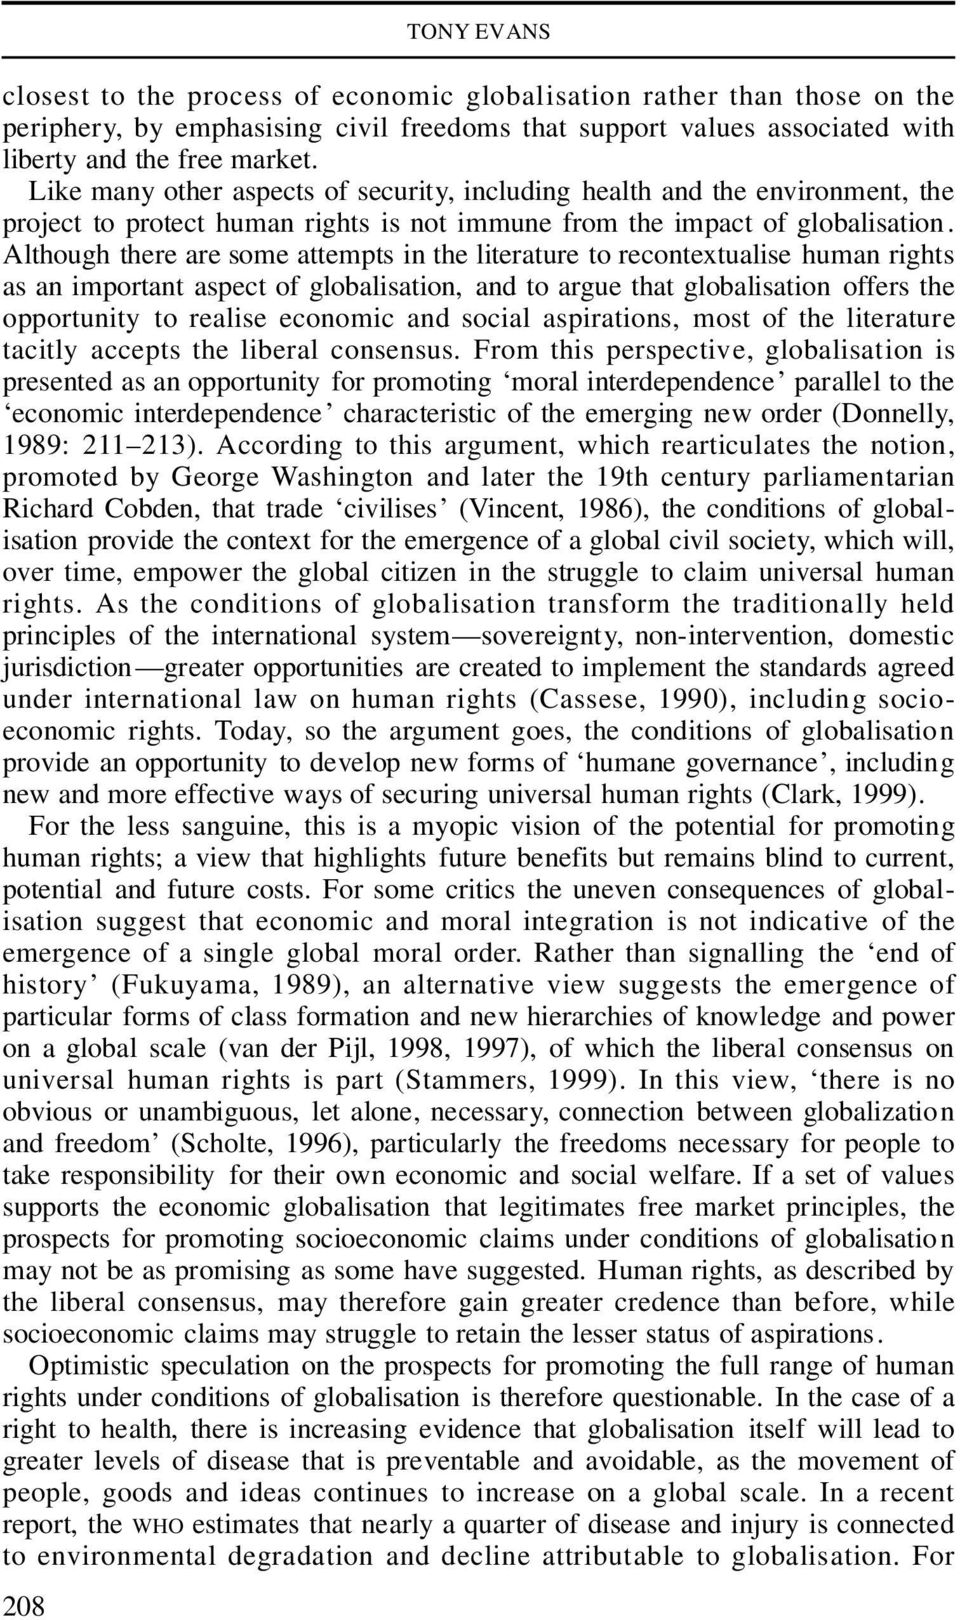 Although there are some attempts in the literature to recontextualise human rights as an important aspect of globalisation, and to argue that globalisation offers the opportunity to realise economic